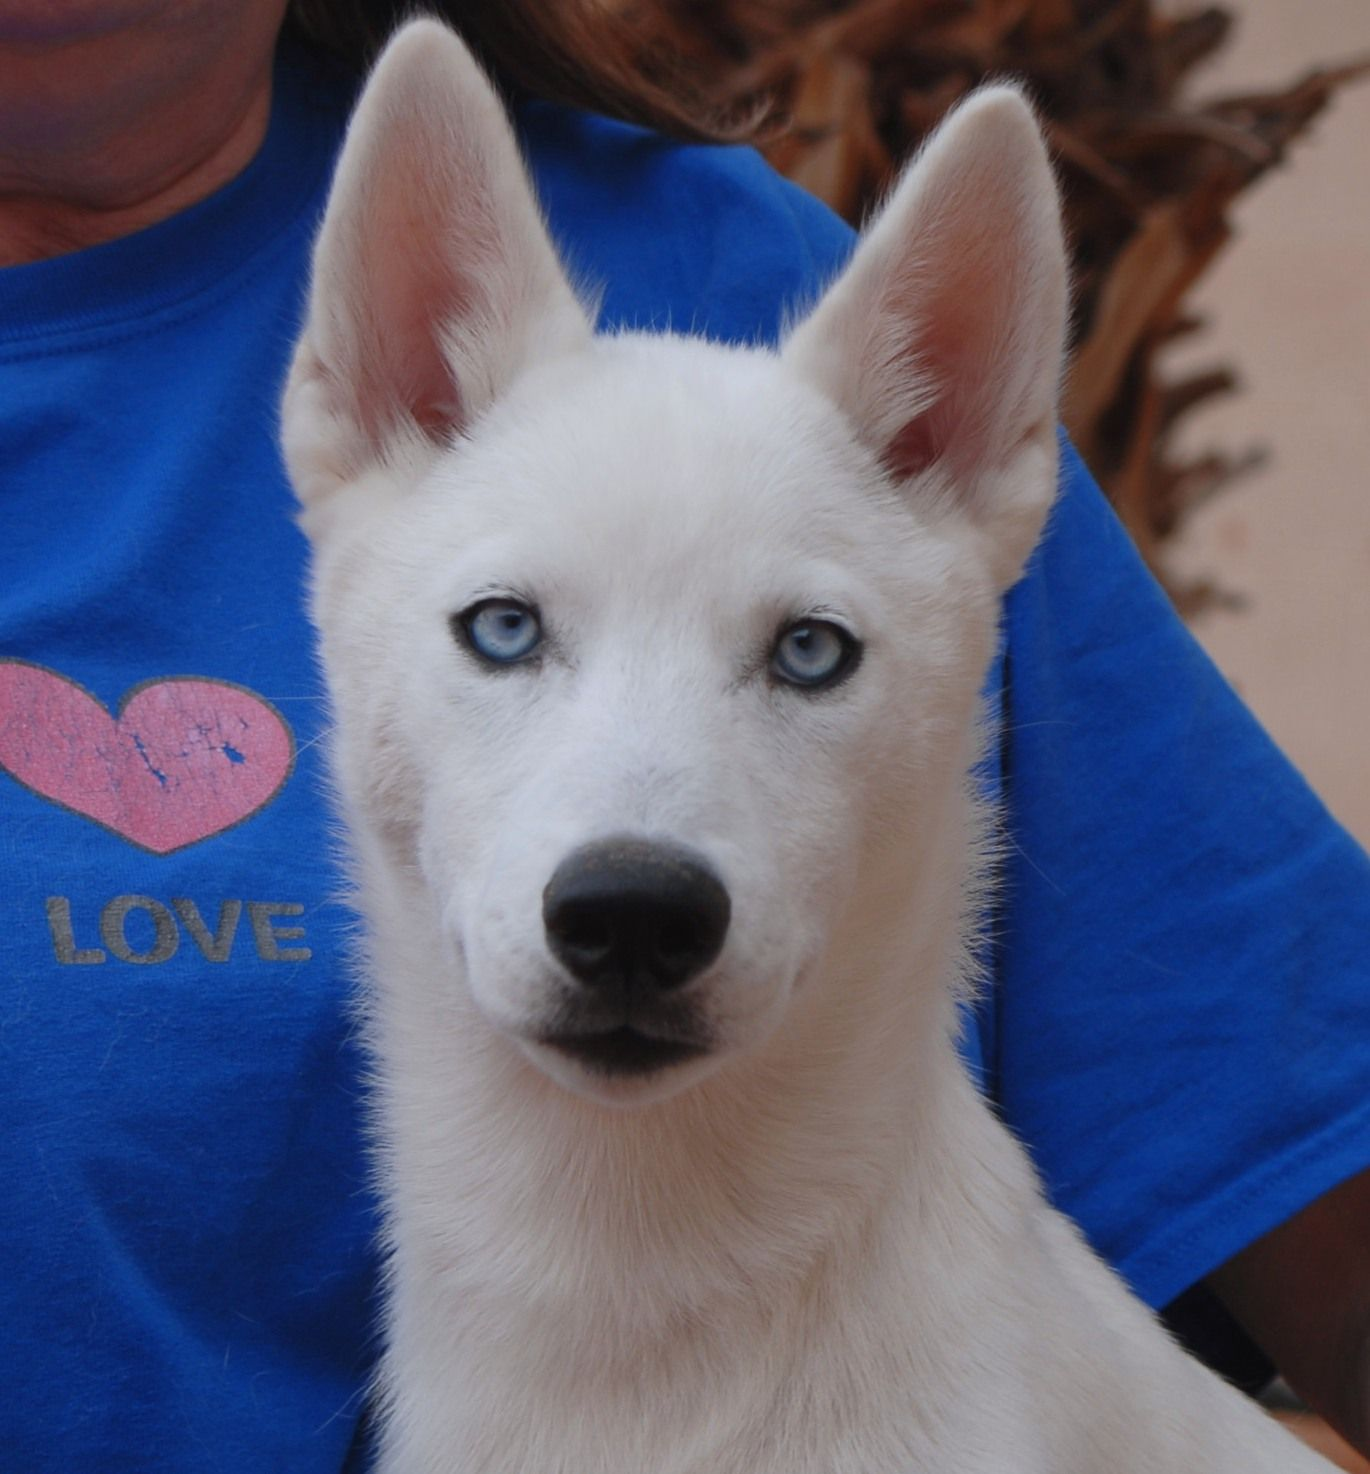 Where to adopt a husky puppy for free